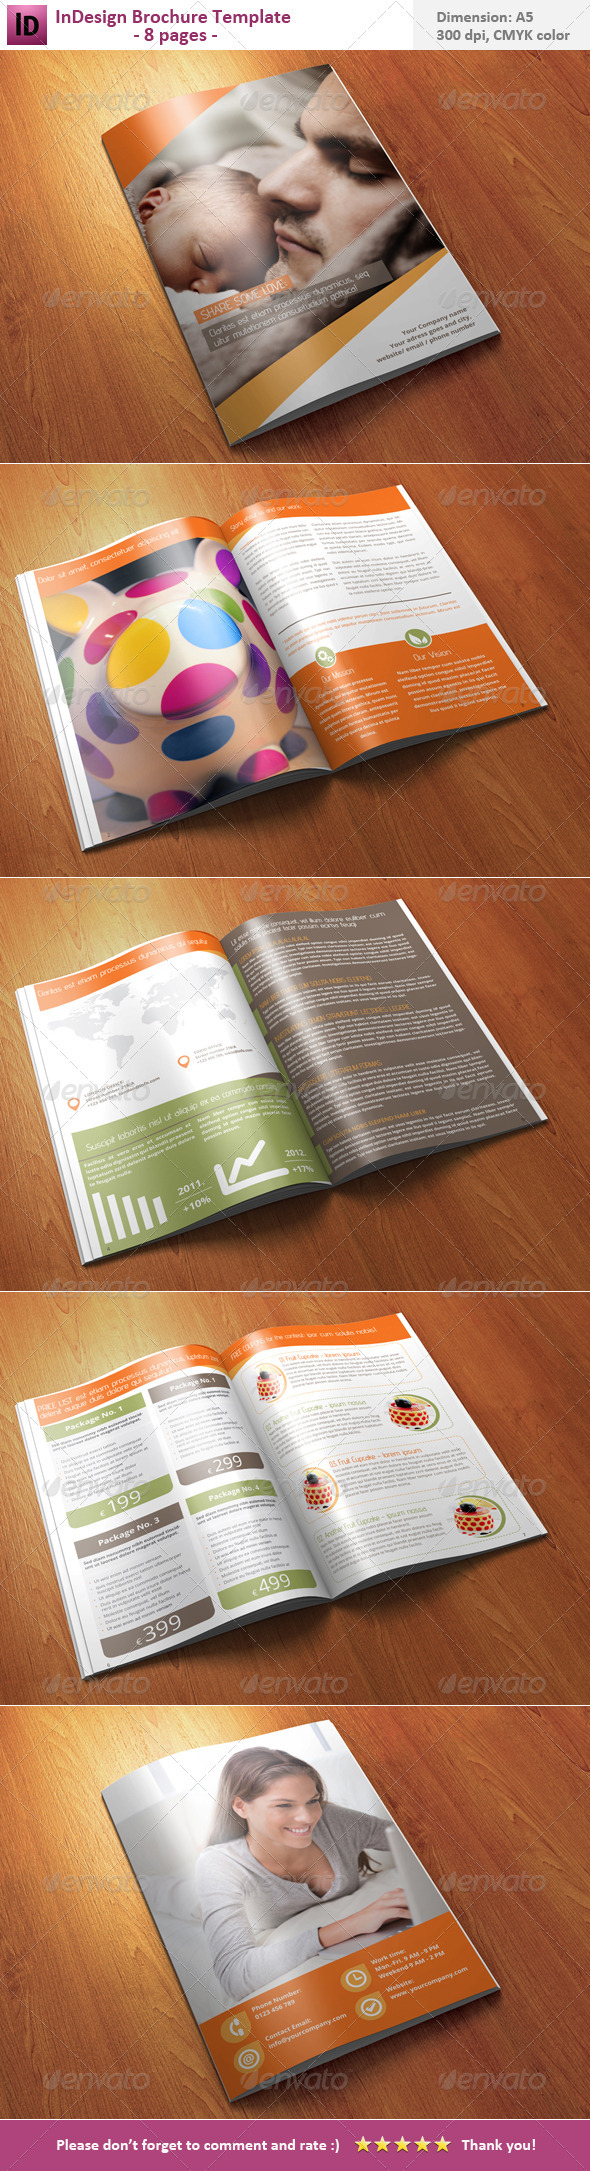 InDesign Brochure Template - 8 pages  - Corporate Brochures